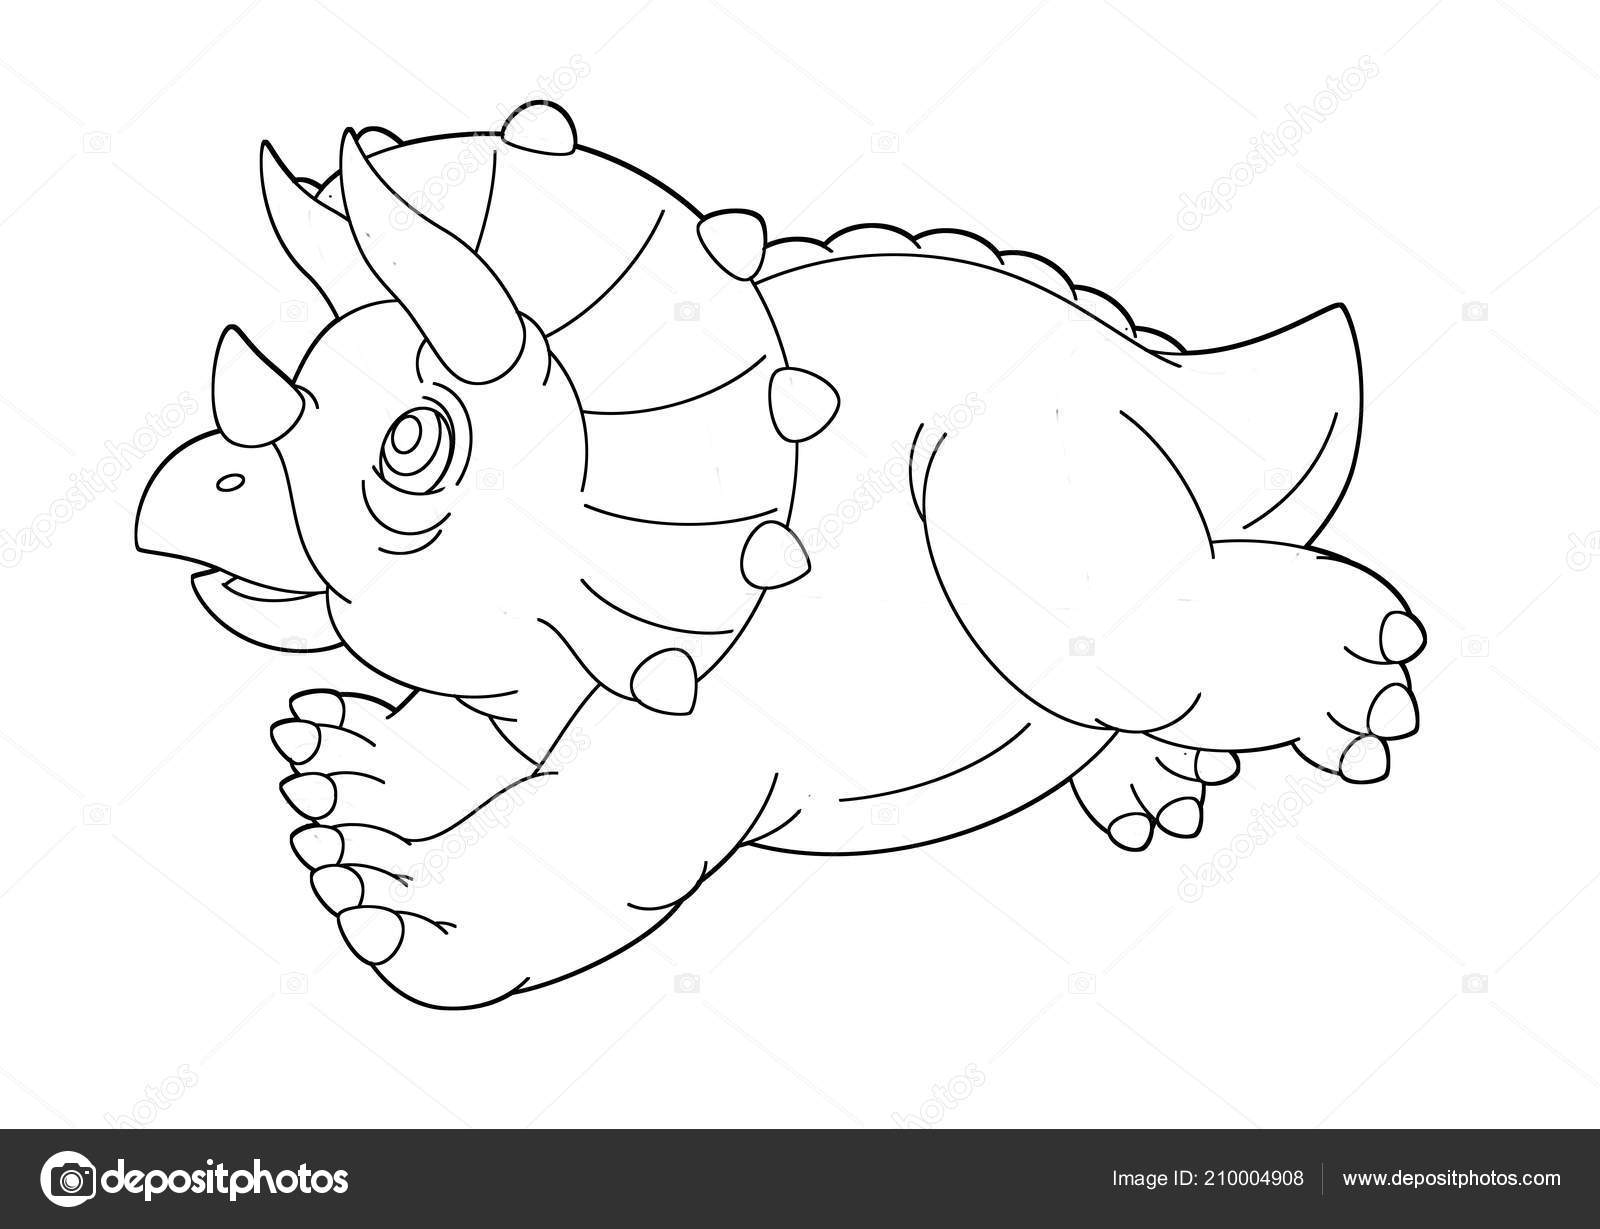 Cartoon happy and funny dinosaur triceratops for coloring page stock image